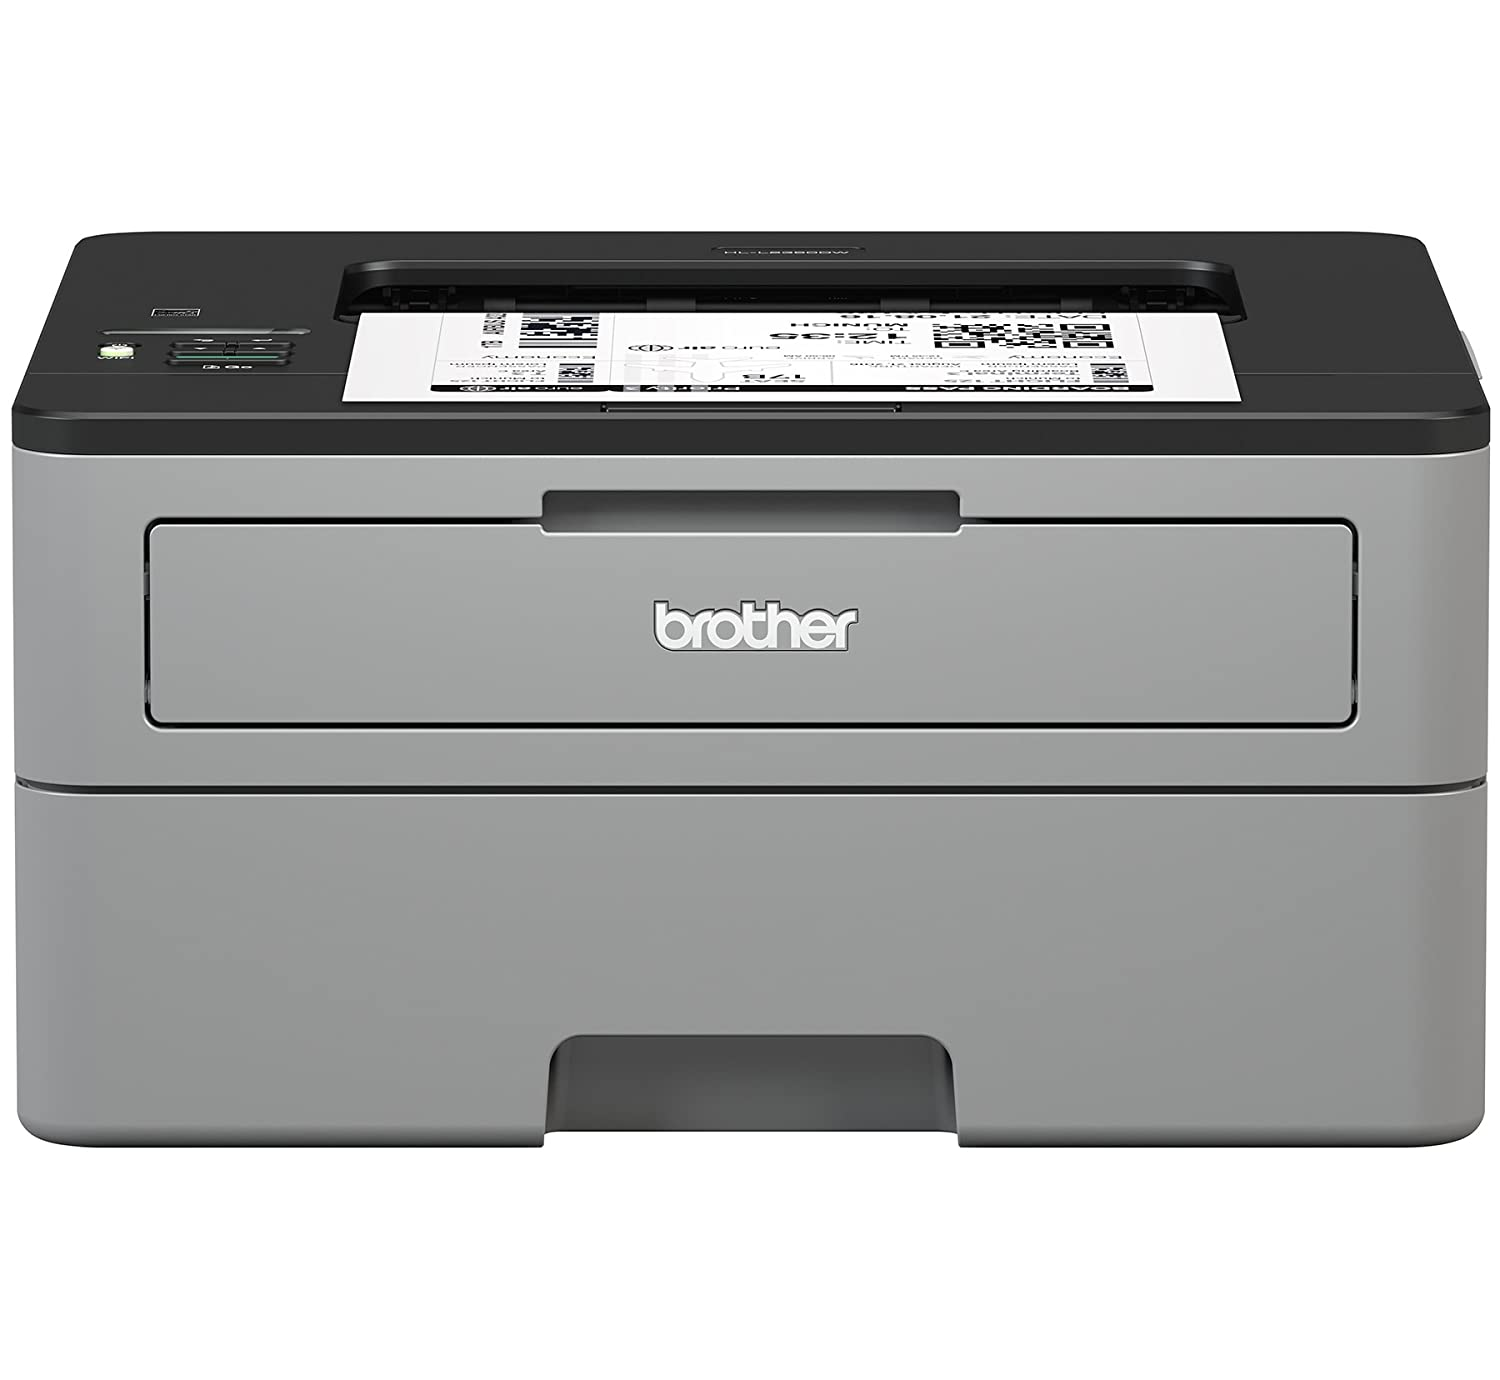 Top 11 Best Printers for Teachers under $100 Reviews 3